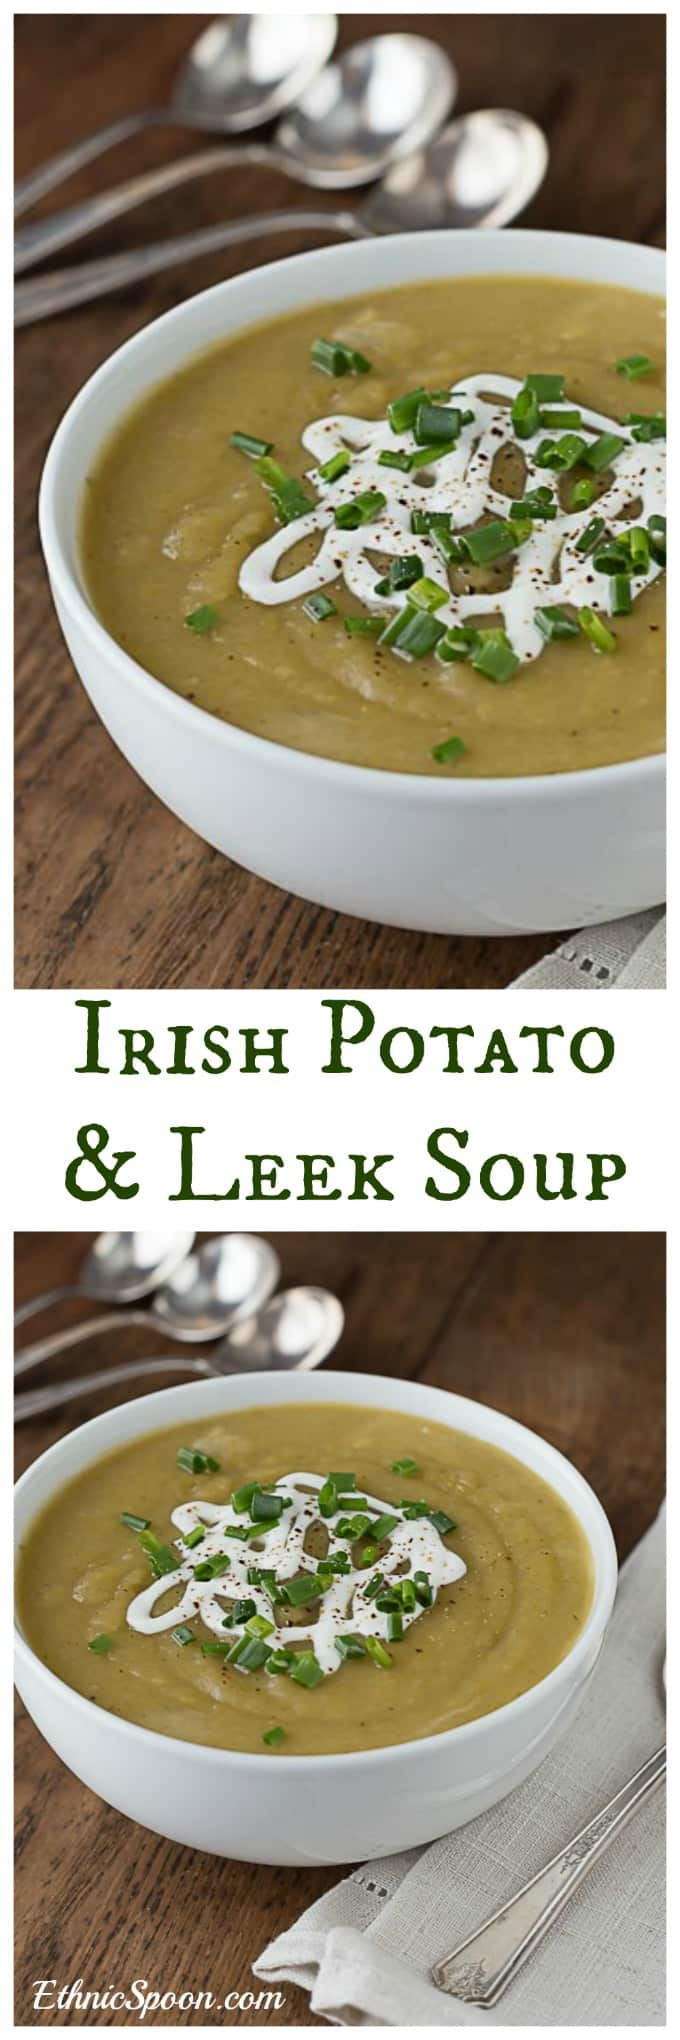 Easy Irish potato leek soup recipe is fast and delicious. Just a few ingredients is all you need. Makes a great vegan meal when you use vegetable stock. |ethnicspoon.com